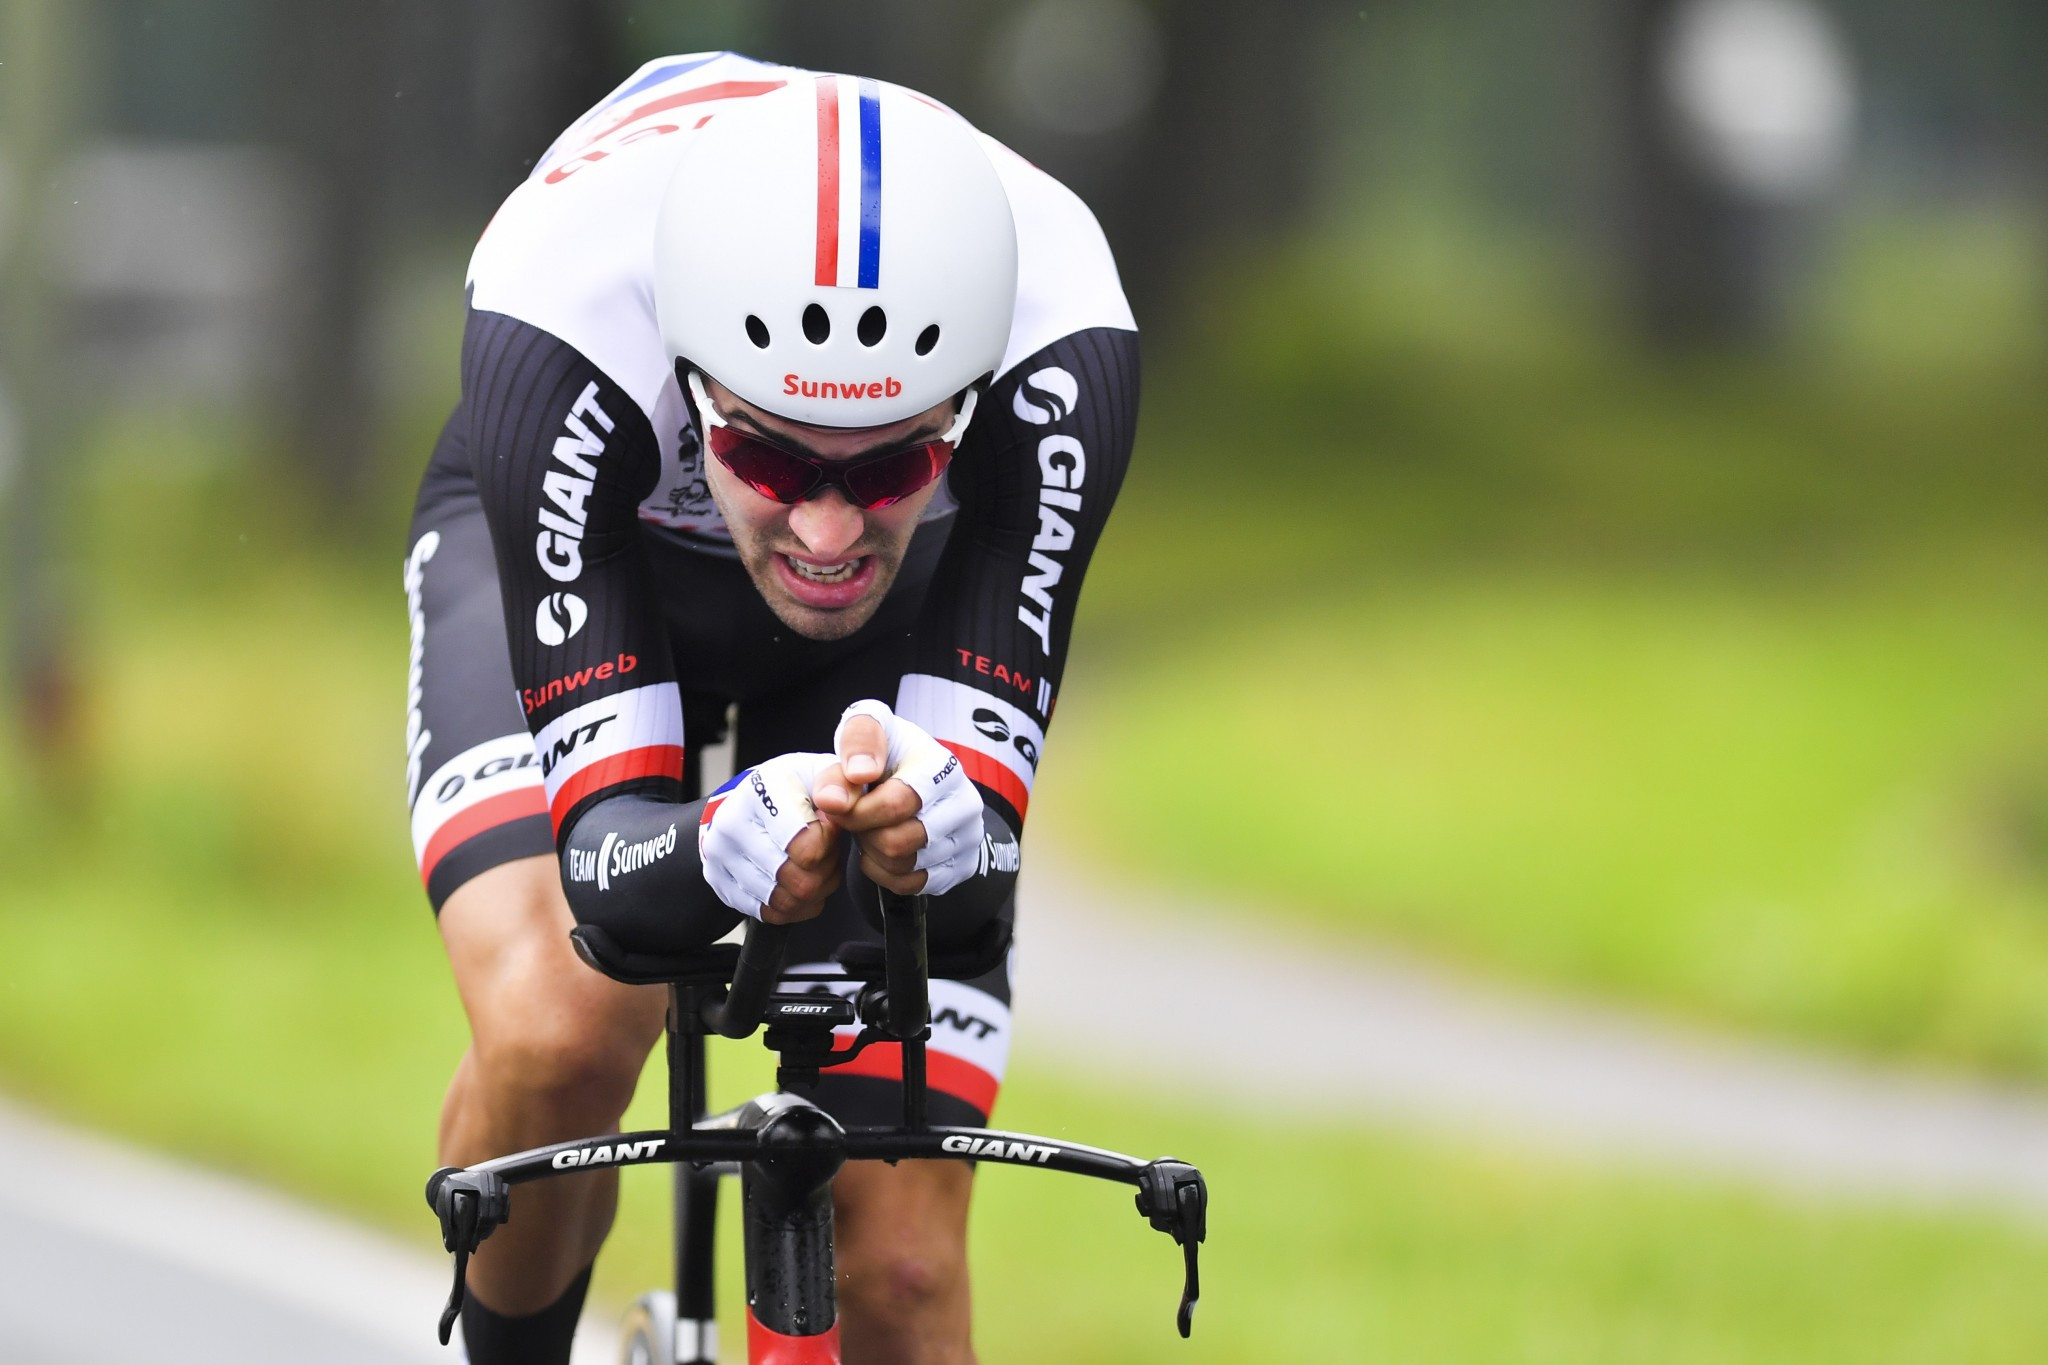 Tom Dumoulin moved up to third place in the general classification ©Getty Images